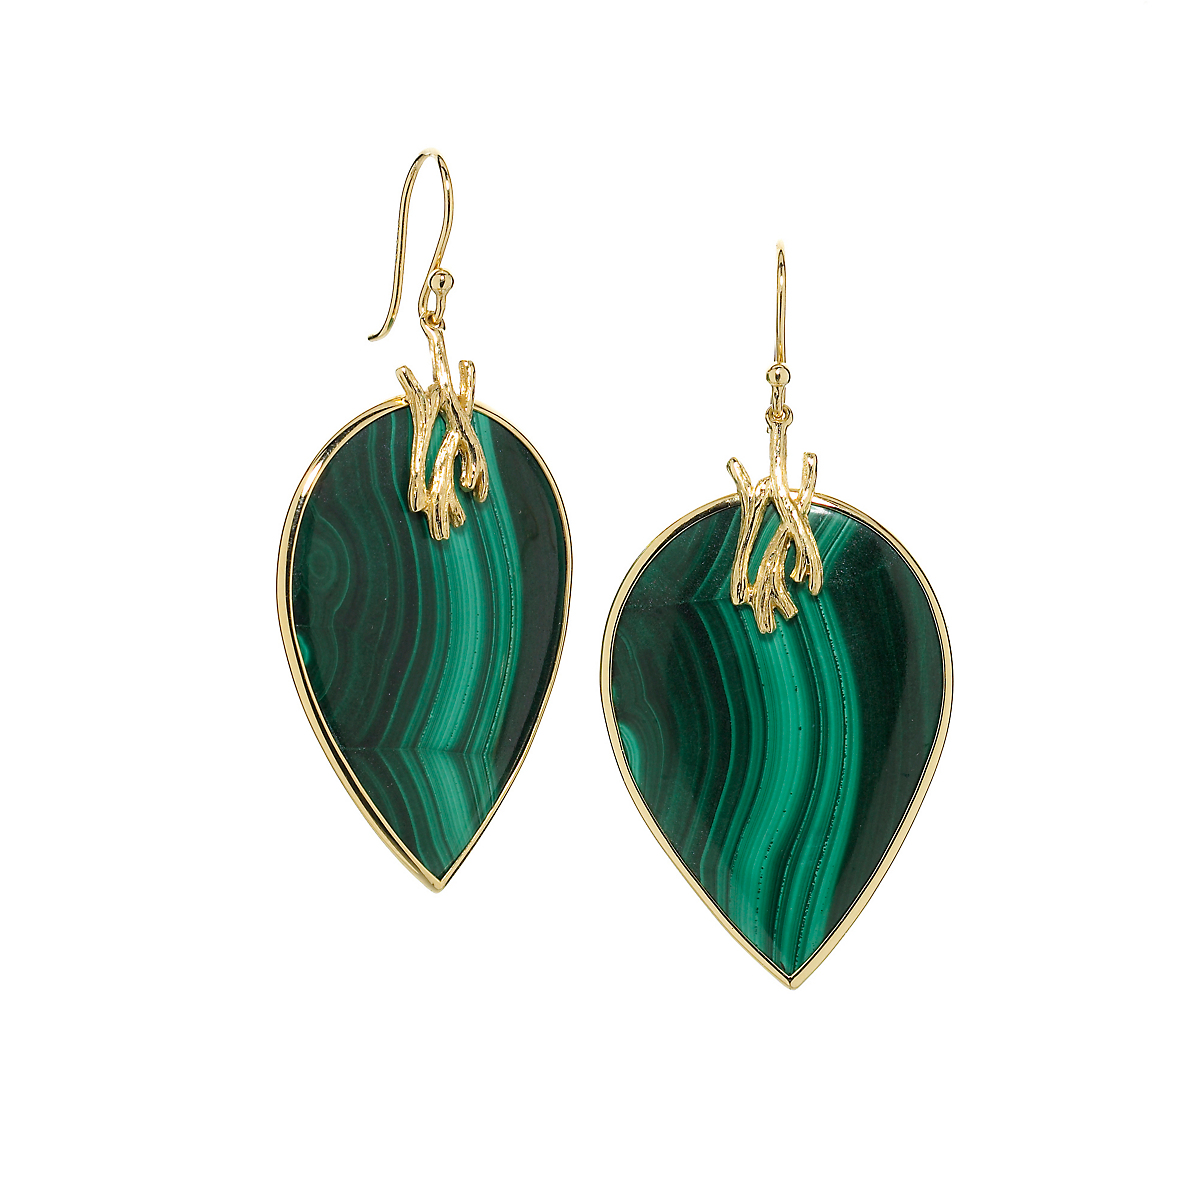 Elizabeth Showers Malachite Gold Drop Earrings